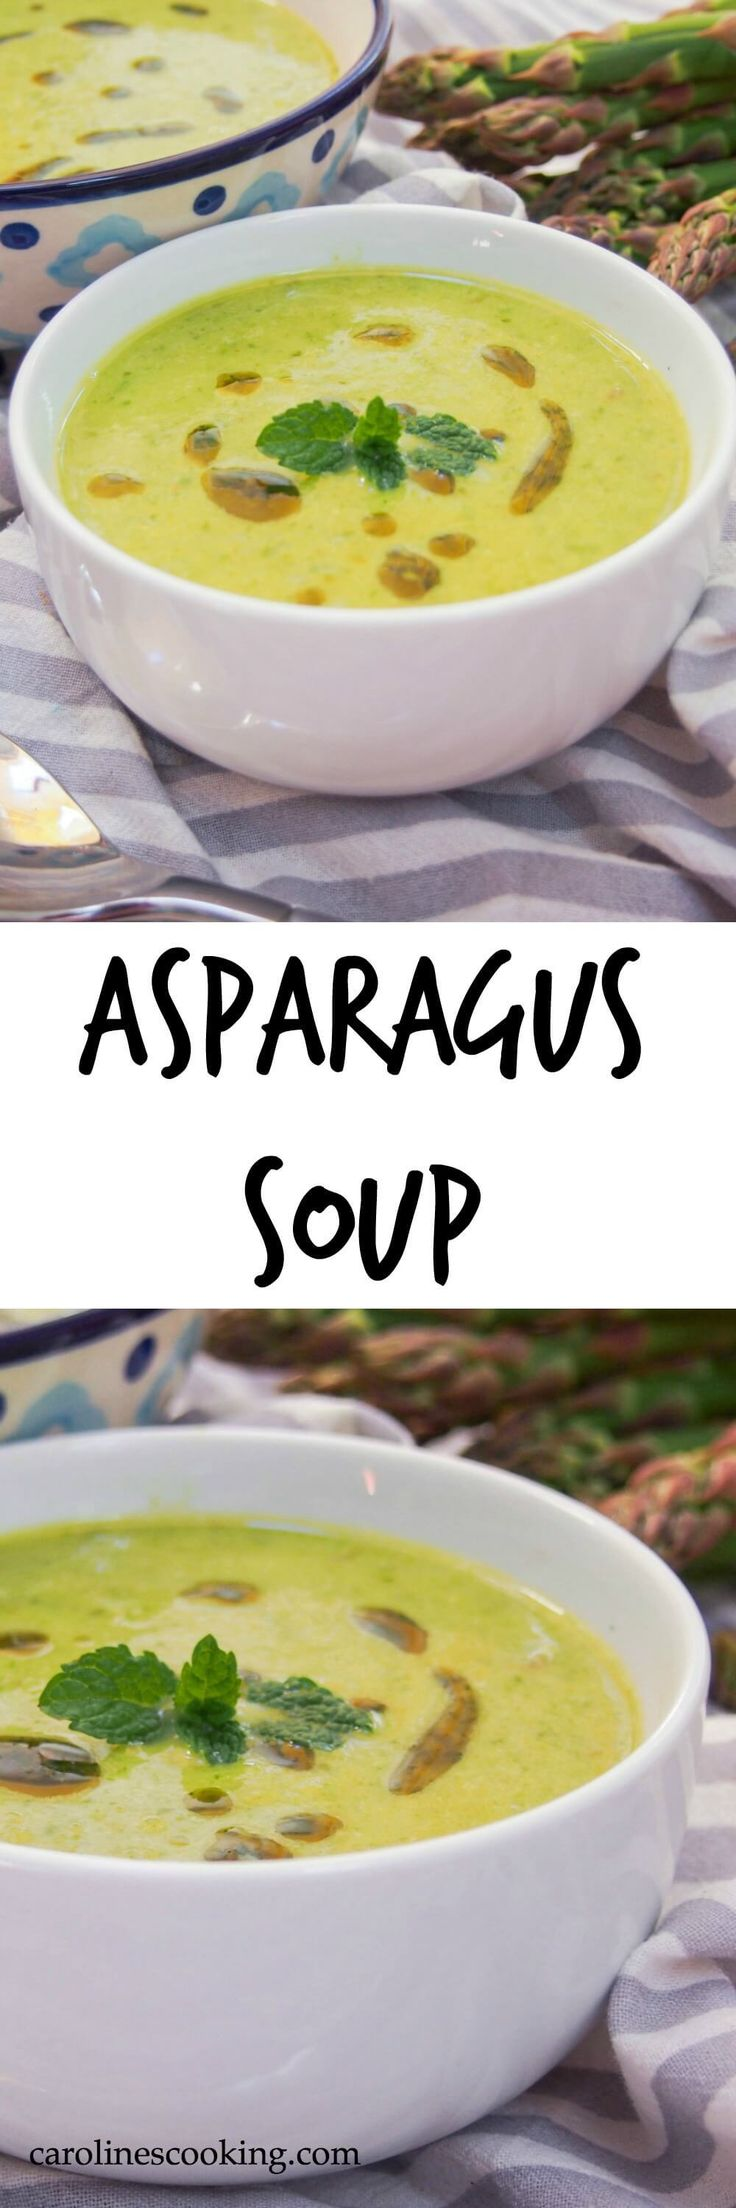 Asparagus soup is such a comforting taste of spring. Light, easy to make and good for you too. A great appetizer (Vegan, gluten free)